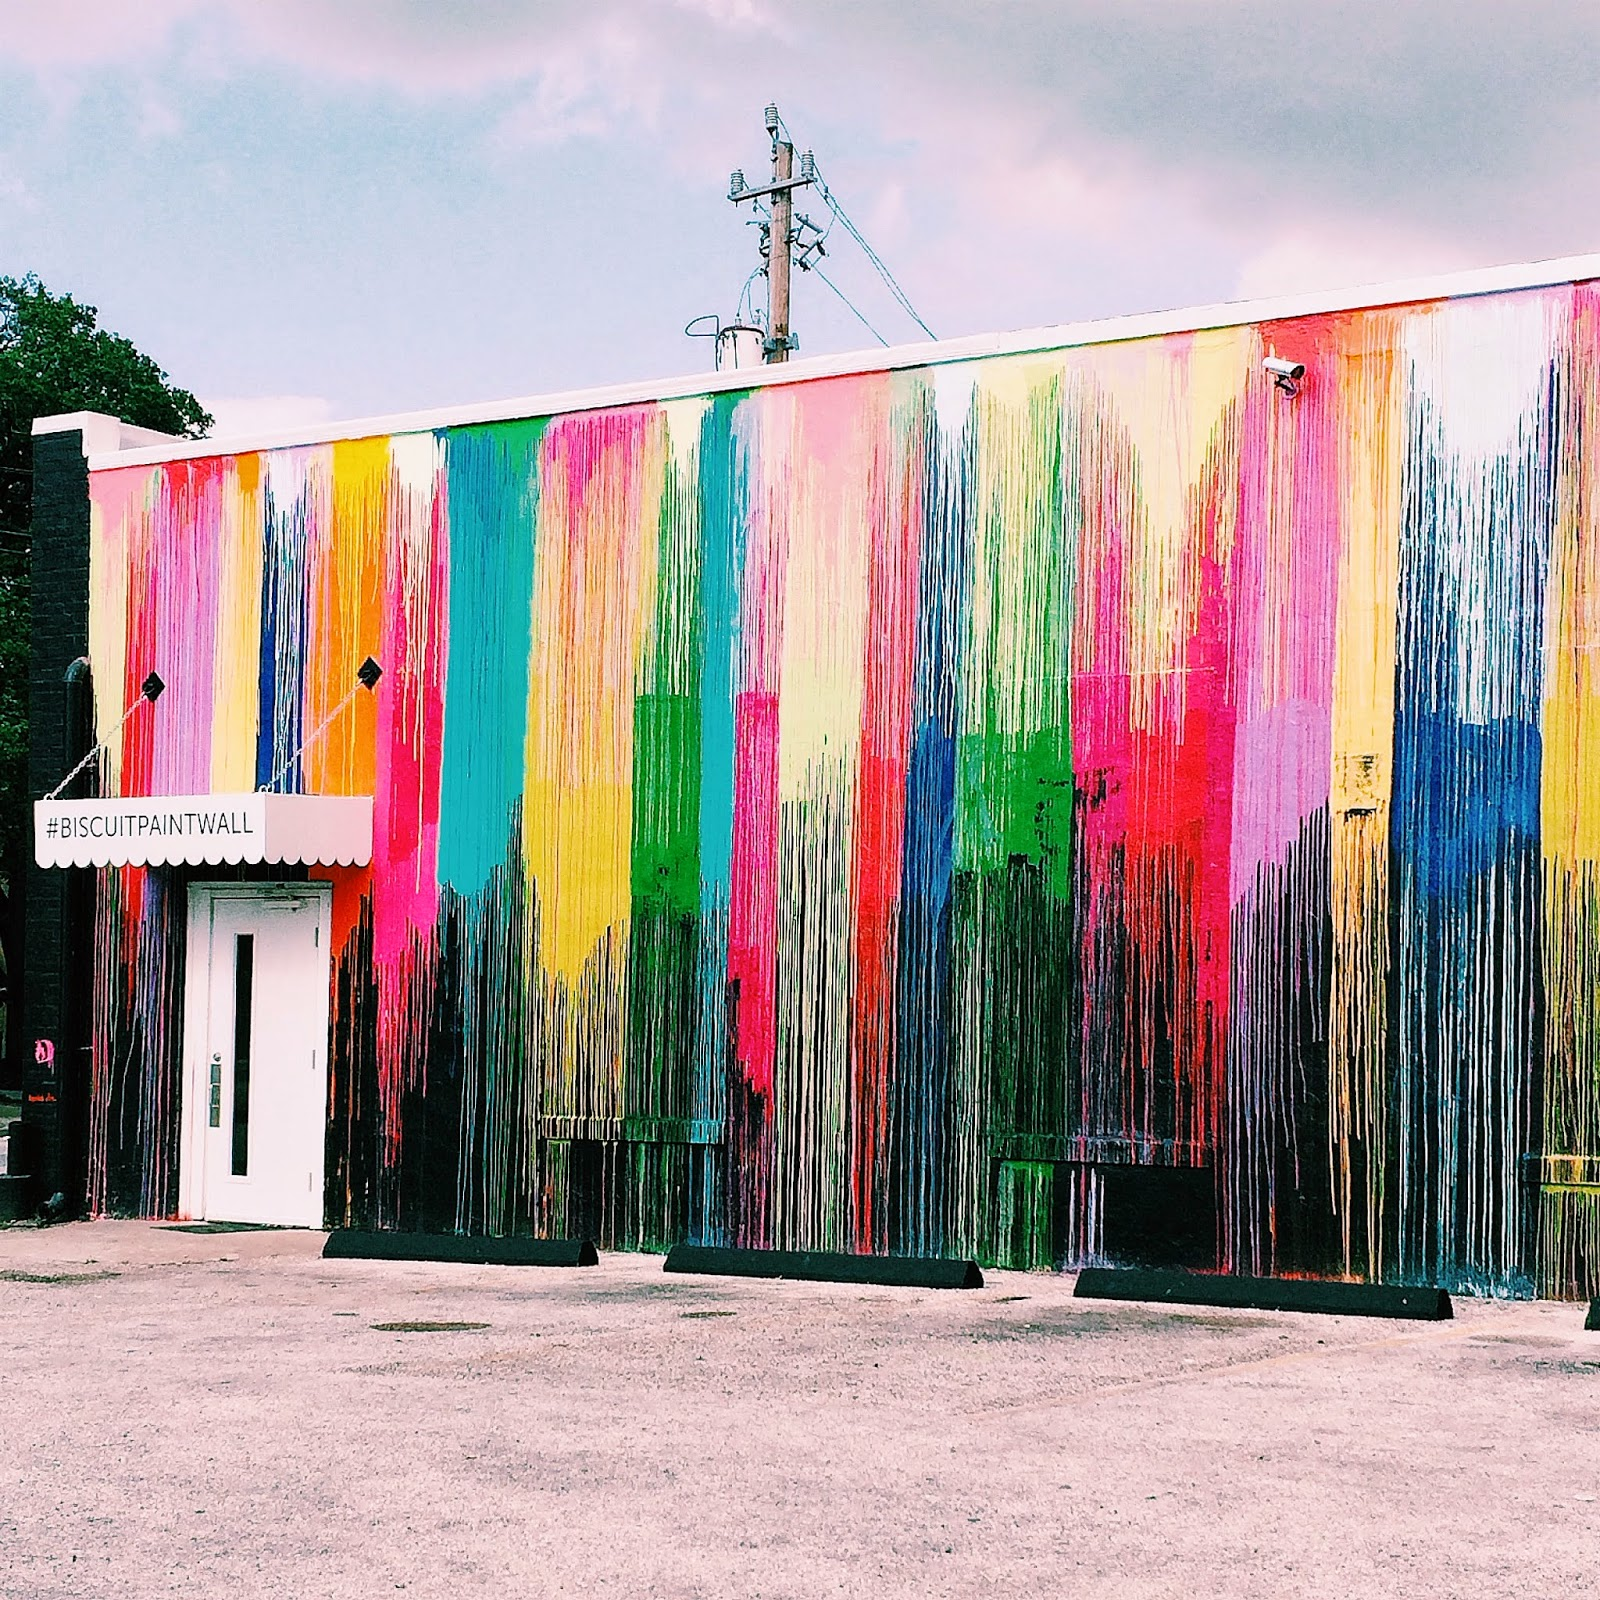 Trendy in Texas, Biscuit Home, Westheimer, Houston, Montrose, #BiscuitPaintWall, Biscuit Paint Wall